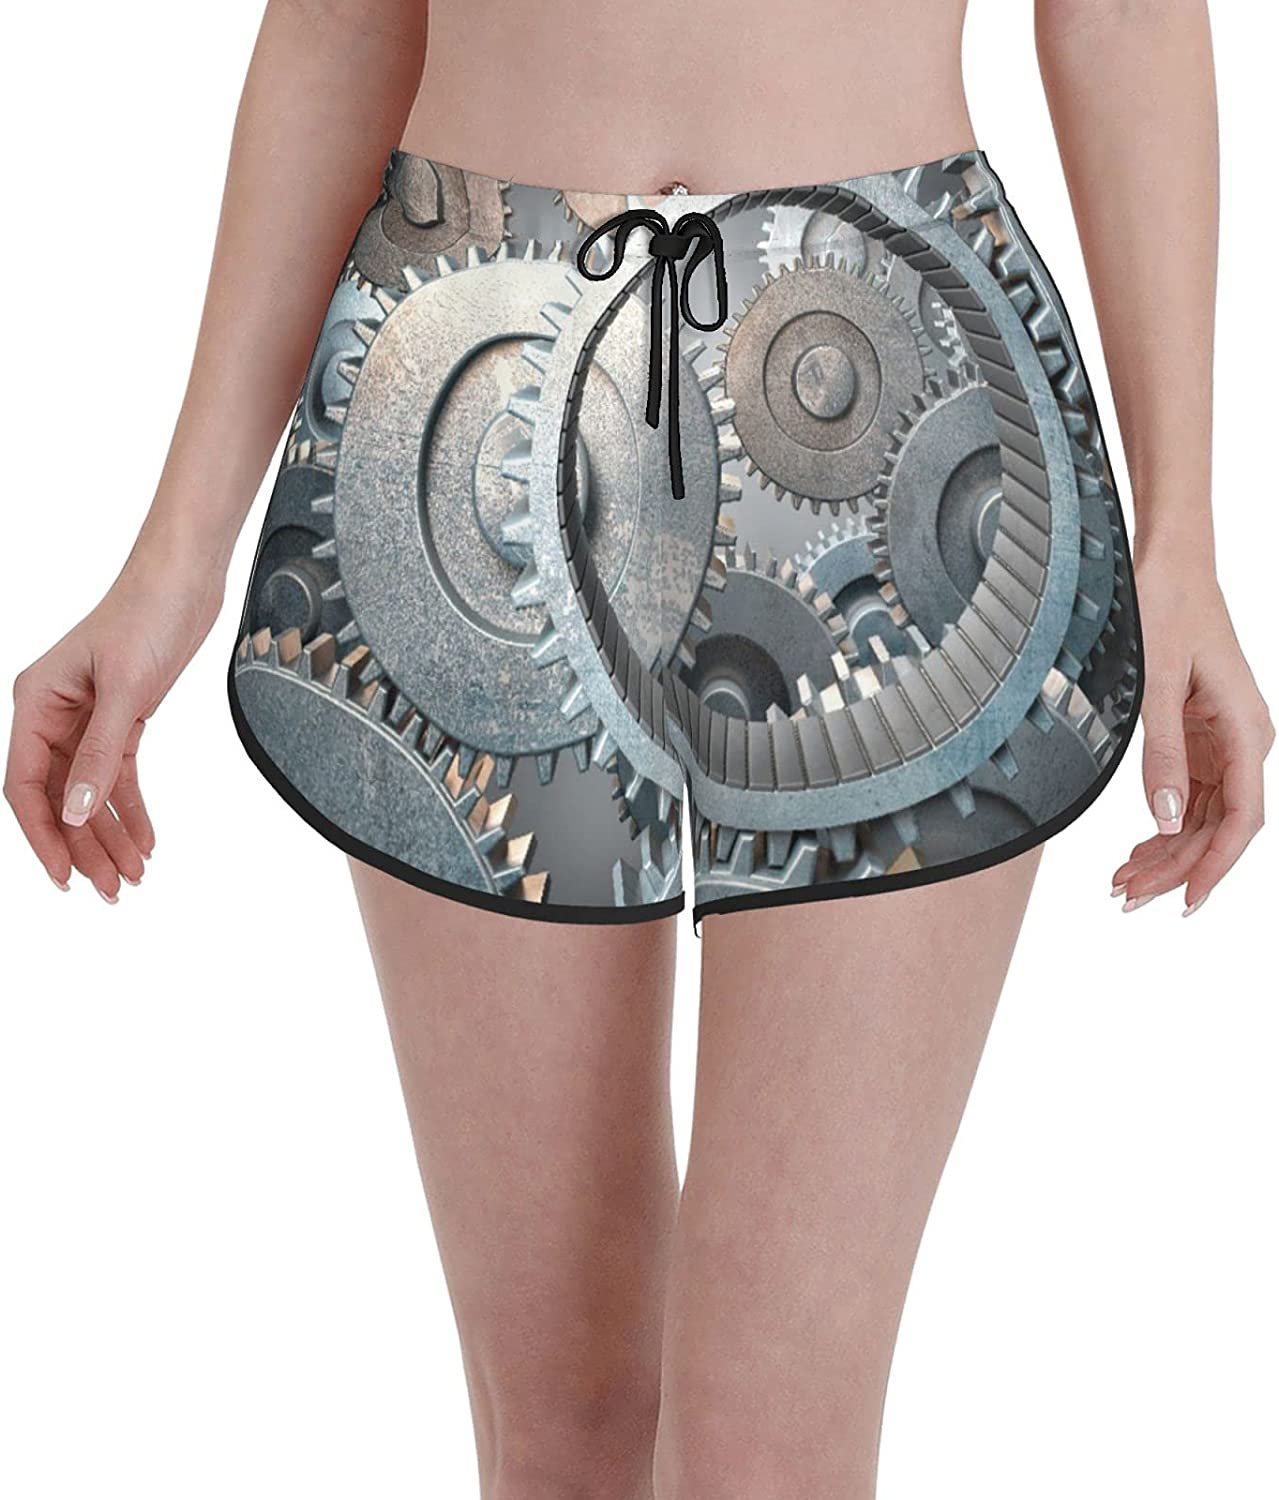 Comfortable Casual Board Shorts for Women discount Rusty Image Girls of Ranking TOP9 E